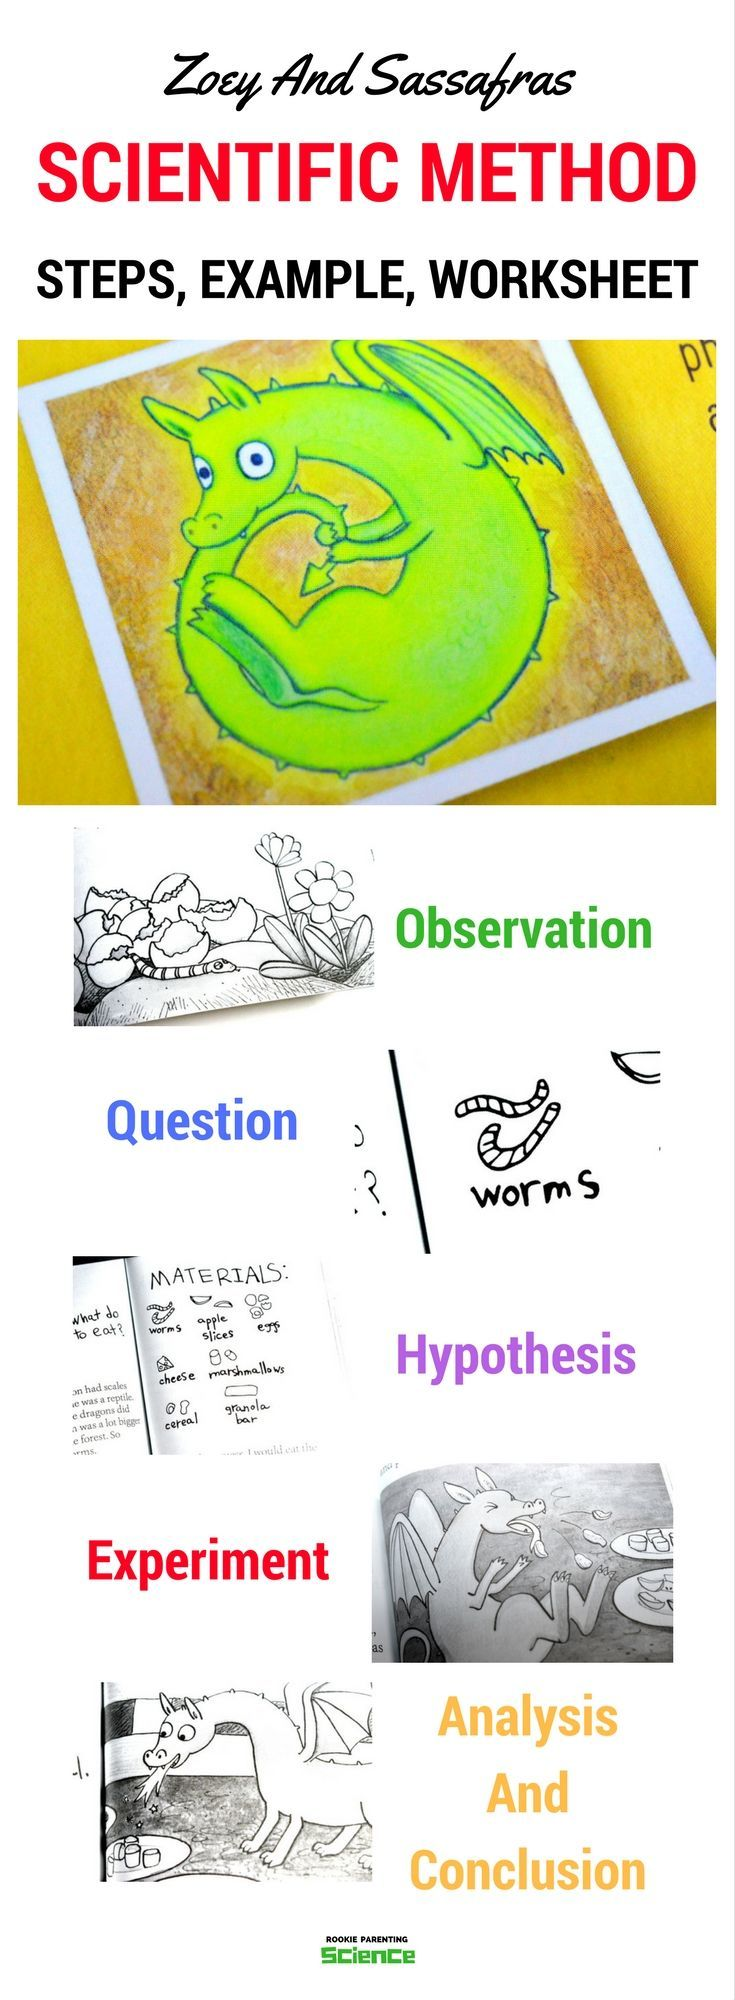 Scientific Method Worksheet - Steps And Example #ScienceFair #STEM #rookieparentingscience